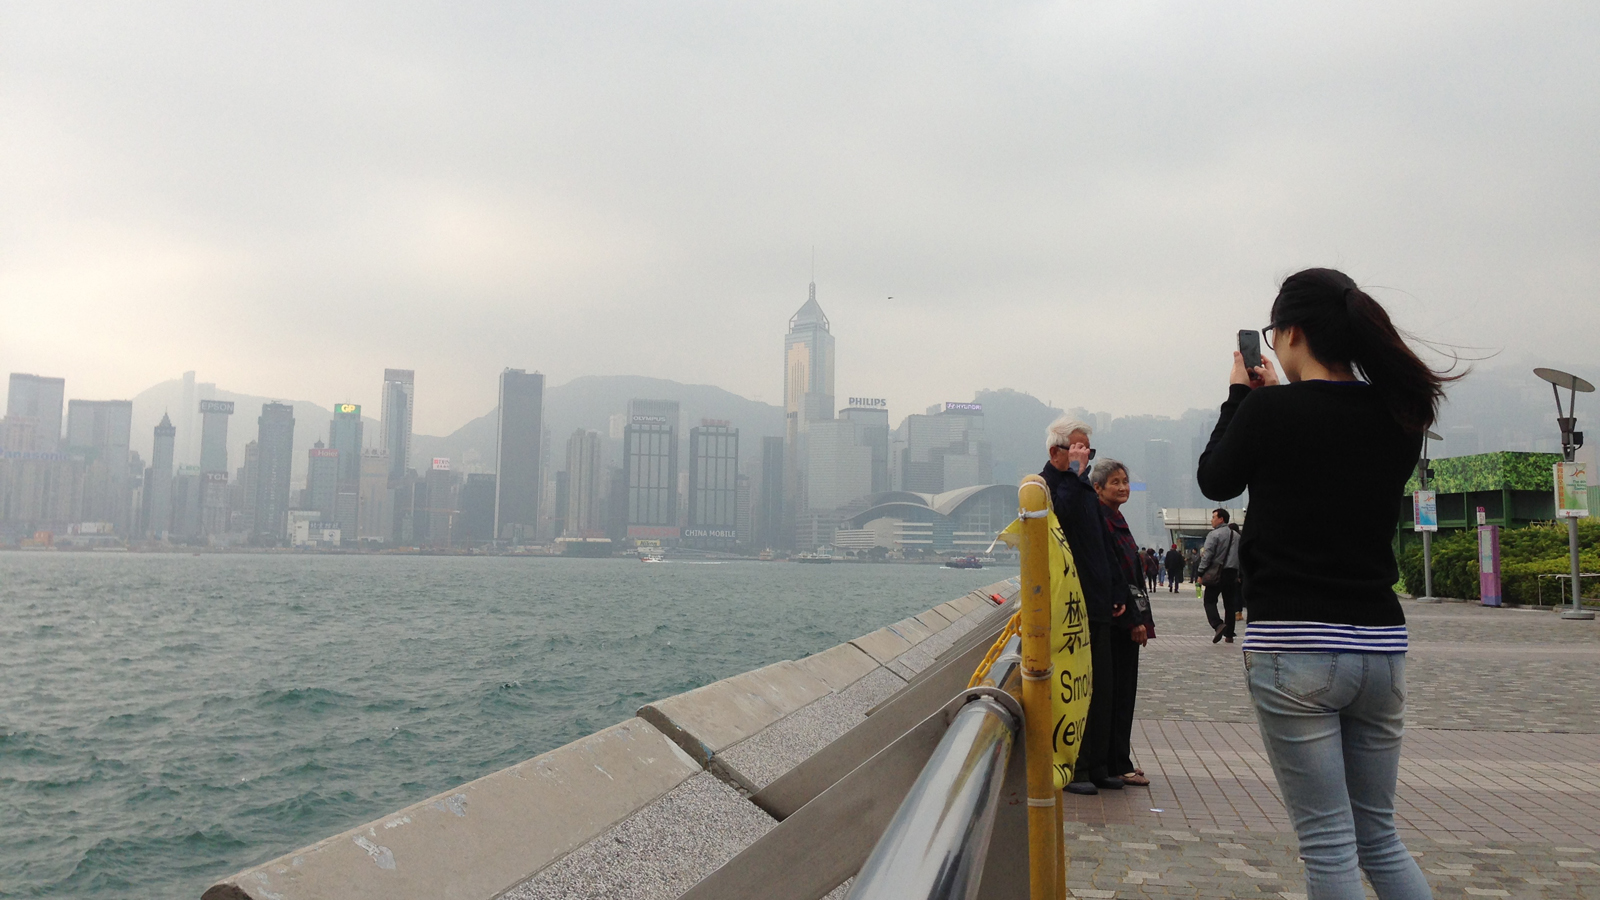 The weather may be foggy, but it hasn't stopped this woman from taking a photo of Hong Kong Island's skyline.